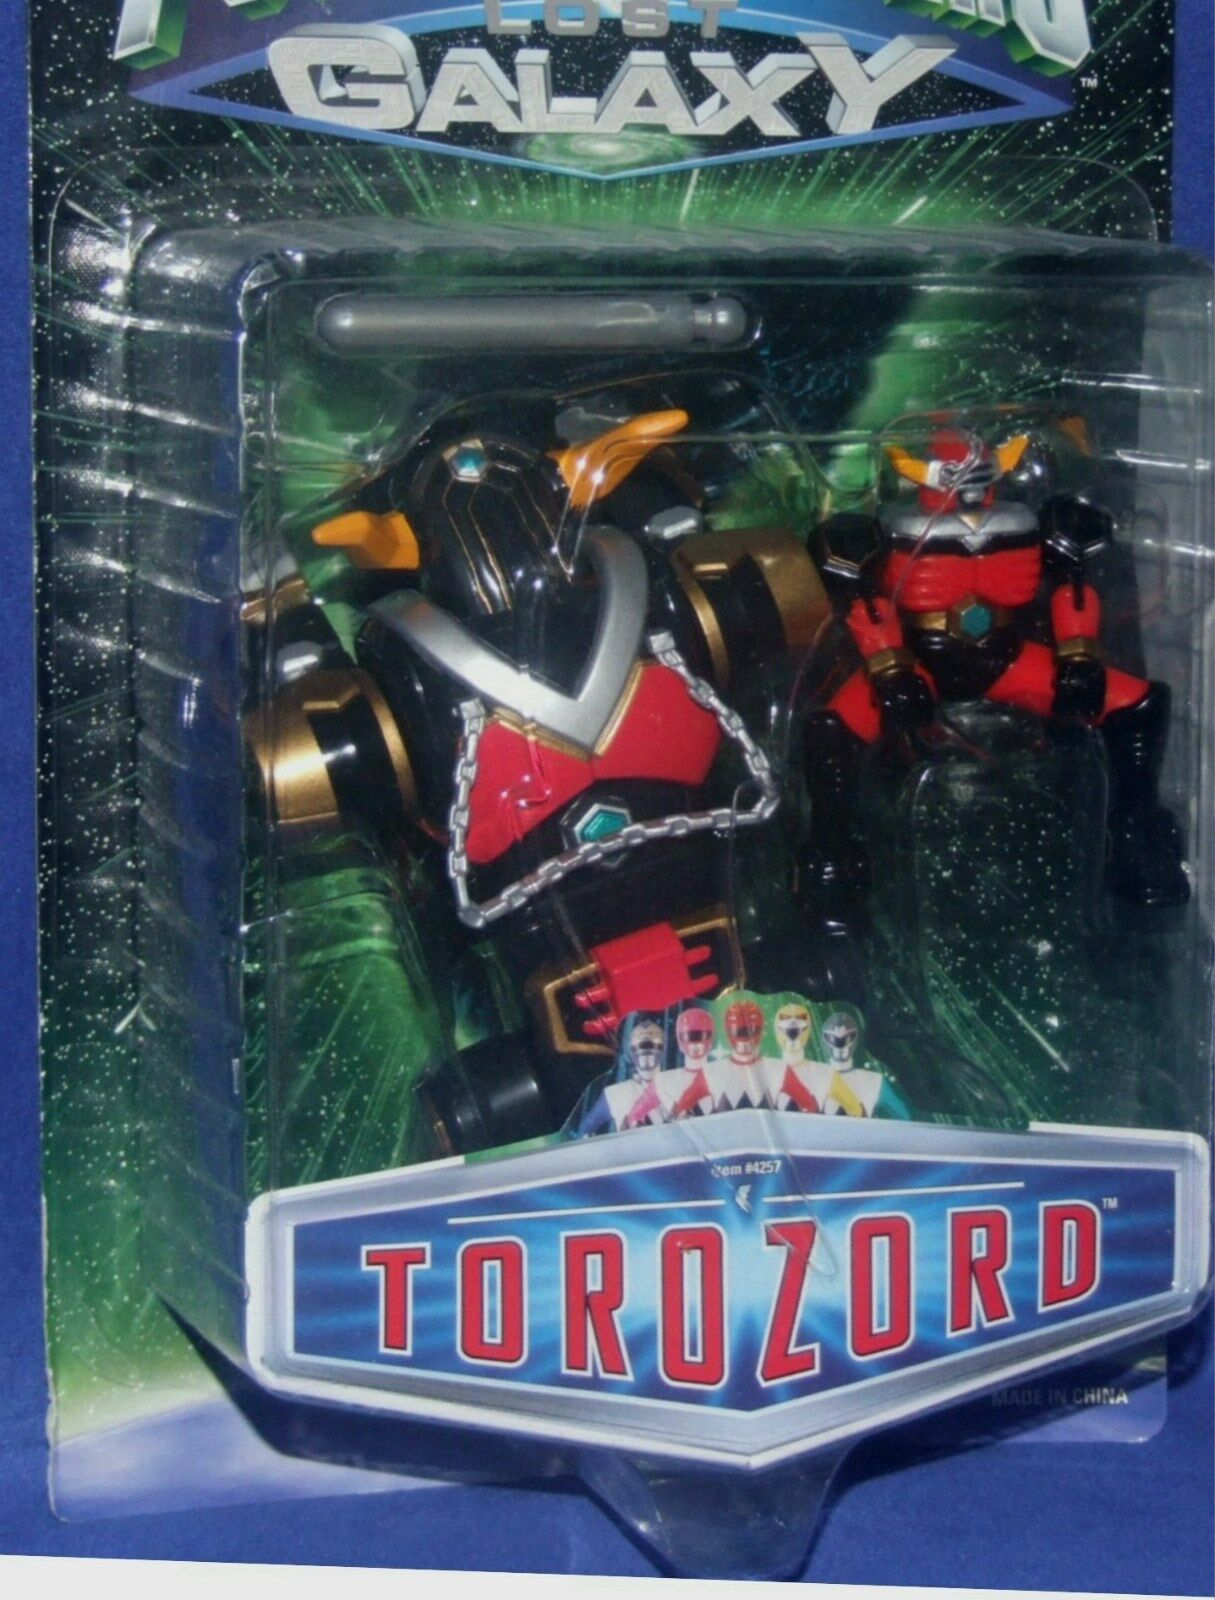 Power Rangers Lost Galaxy Tgoldzord Tgoldzord Tgoldzord Space Ranger Factory Sealed New 1998 fef7ff